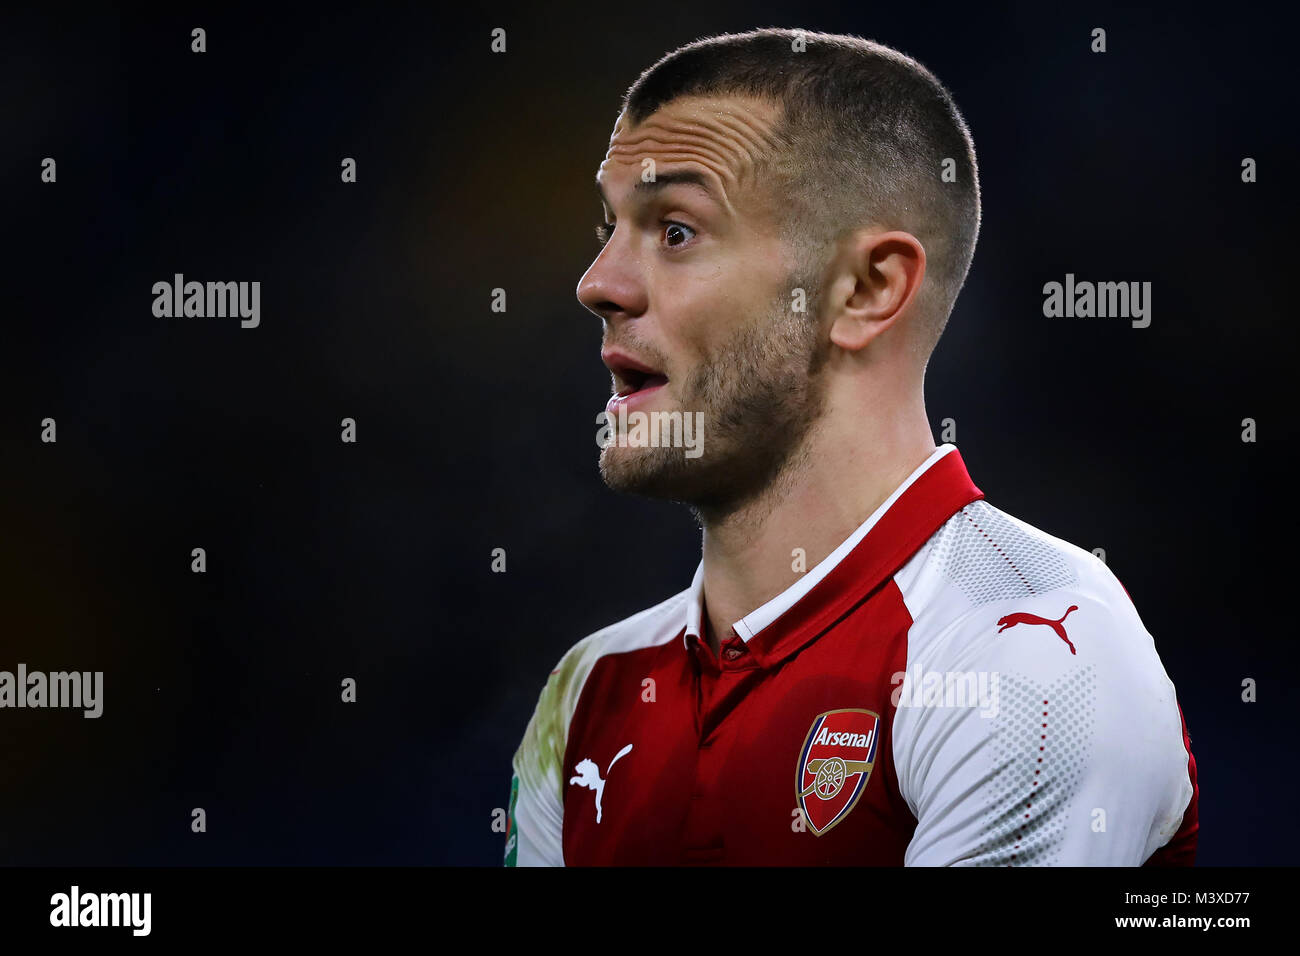 Jack Wilshere of Arsenal - Chelsea v Arsenal, Carabao Cup semi final - 1st leg, Stamford Bridge, London - 10th January - Stock Image